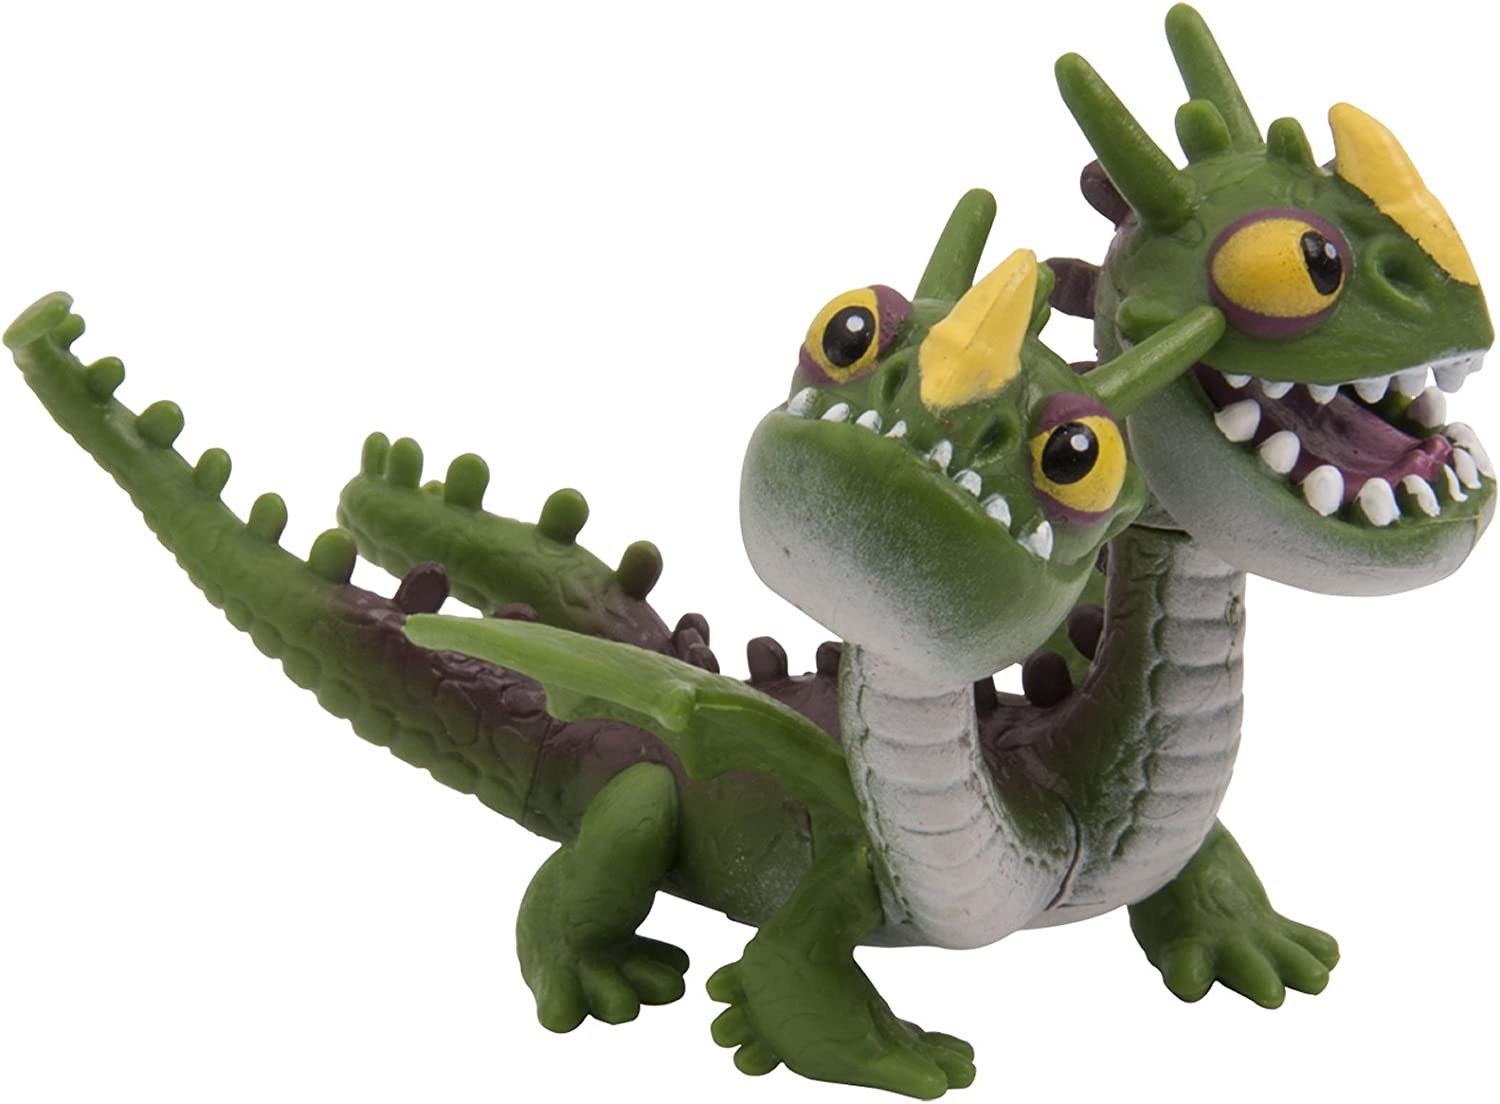 Dragons Drache Belch & Barf Zipplback - aus Dragons Defenders of Berk - Aktionfigur beweglich